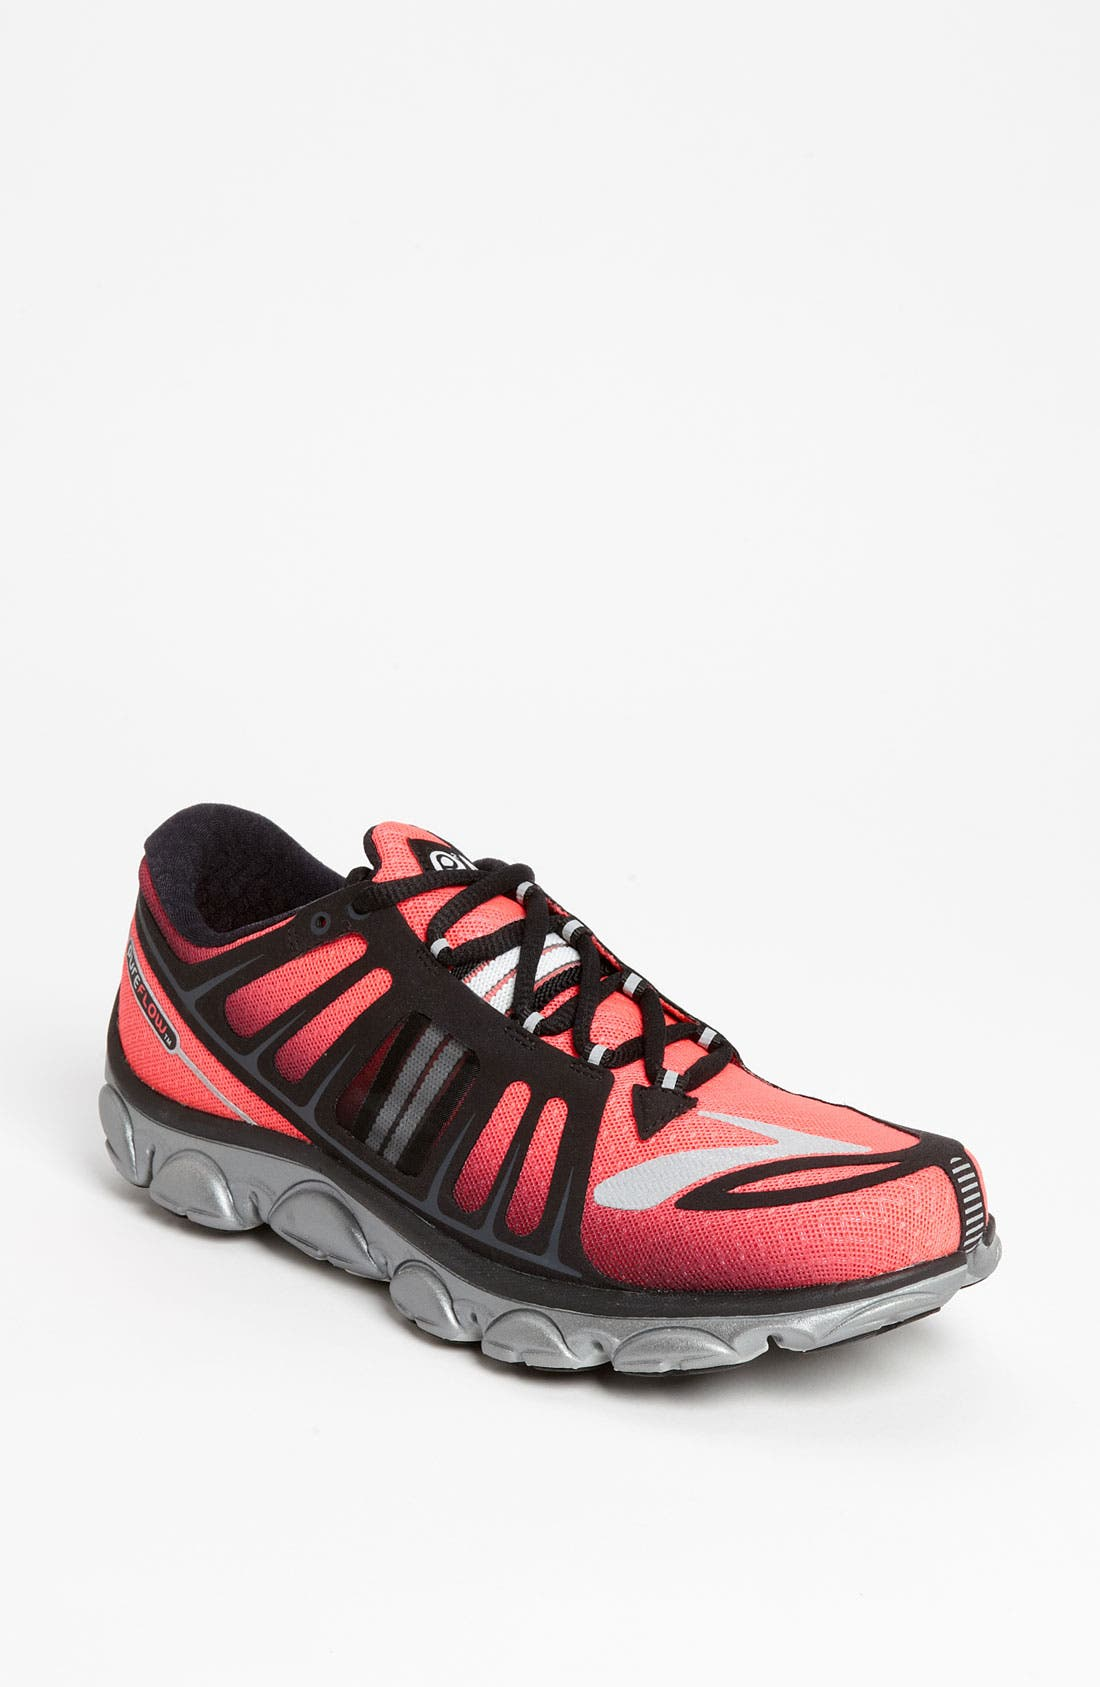 Main Image - Brooks 'PureFlow 2' Running Shoe (Women)(Regular Retail Price: $99.95)